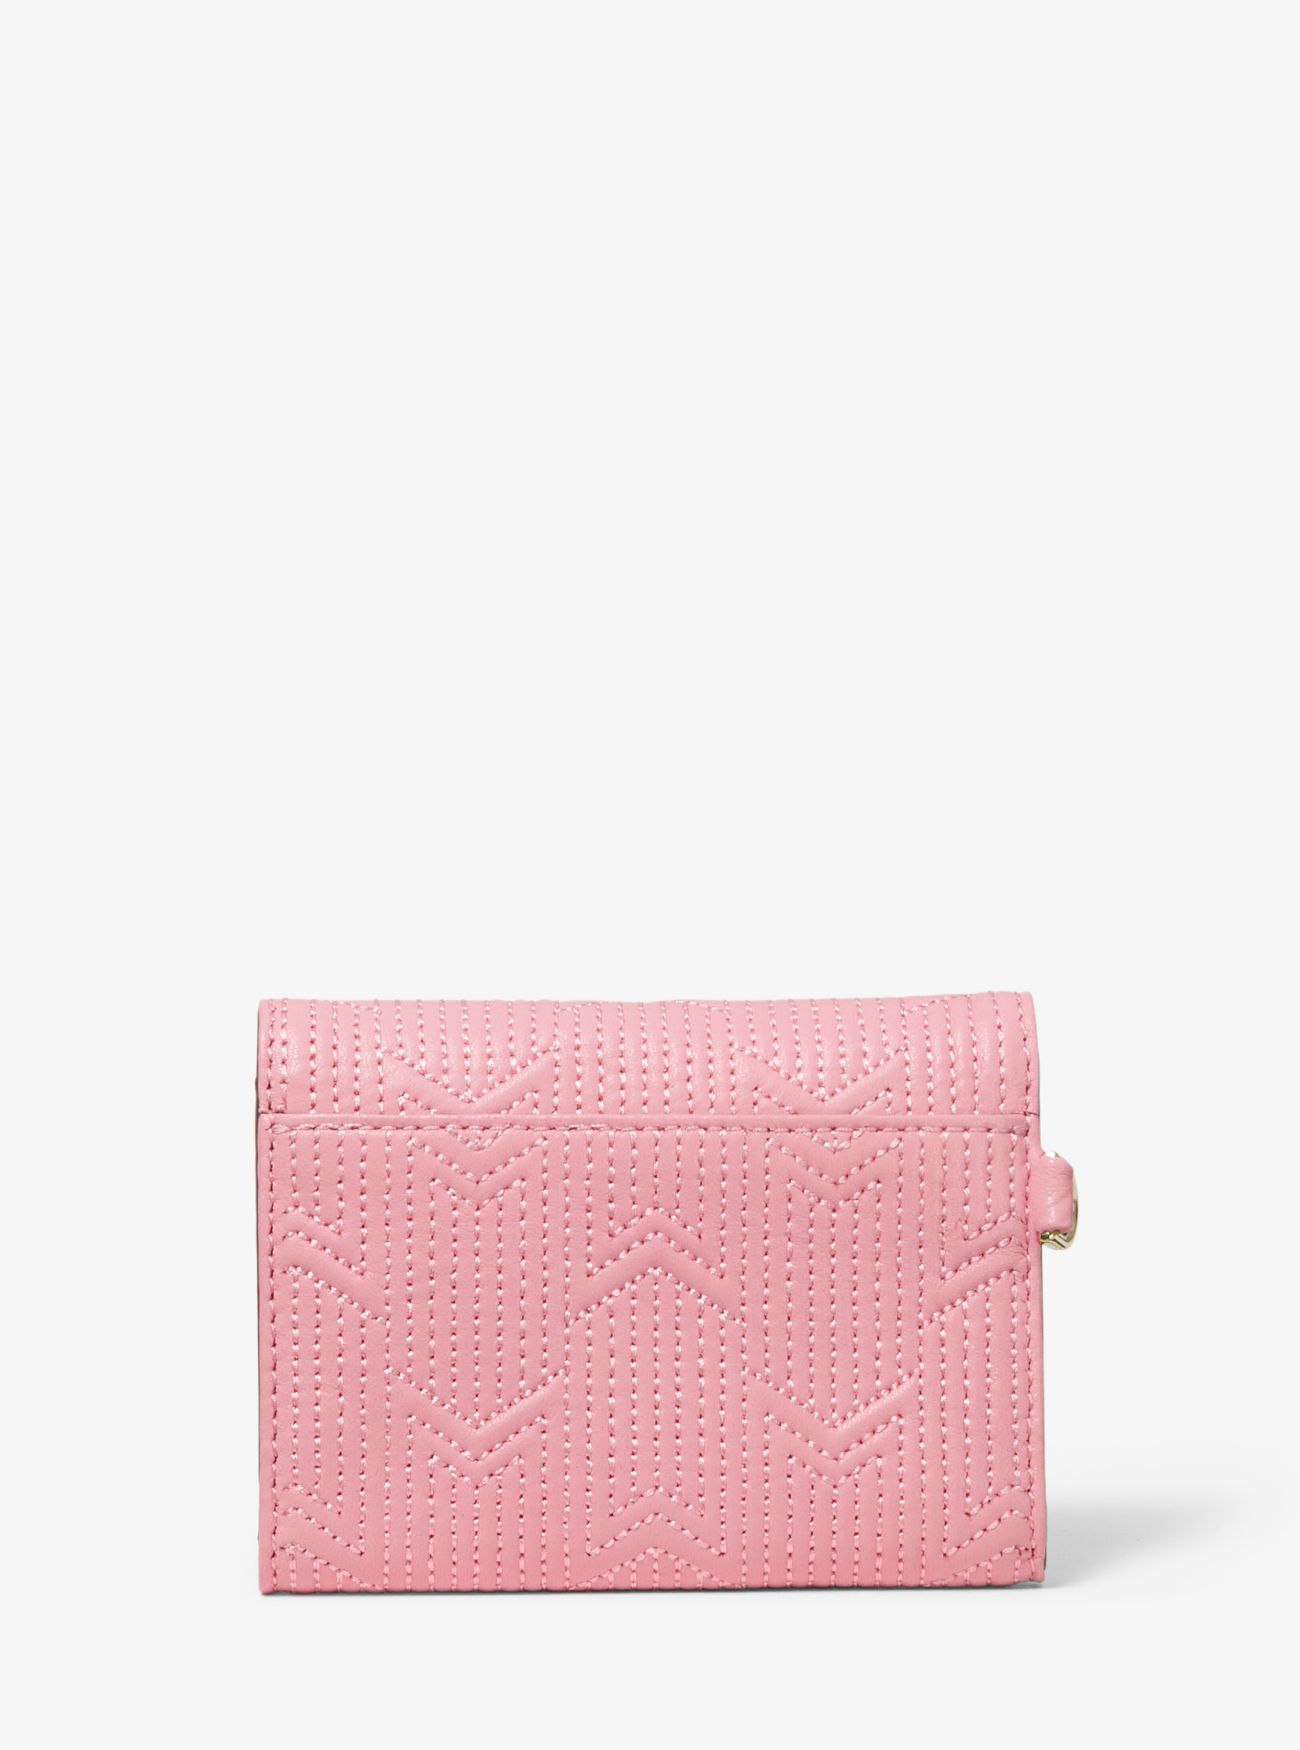 dd367cf52c1f ... Whitney Small Deco Quilted Leather Chain Wallet